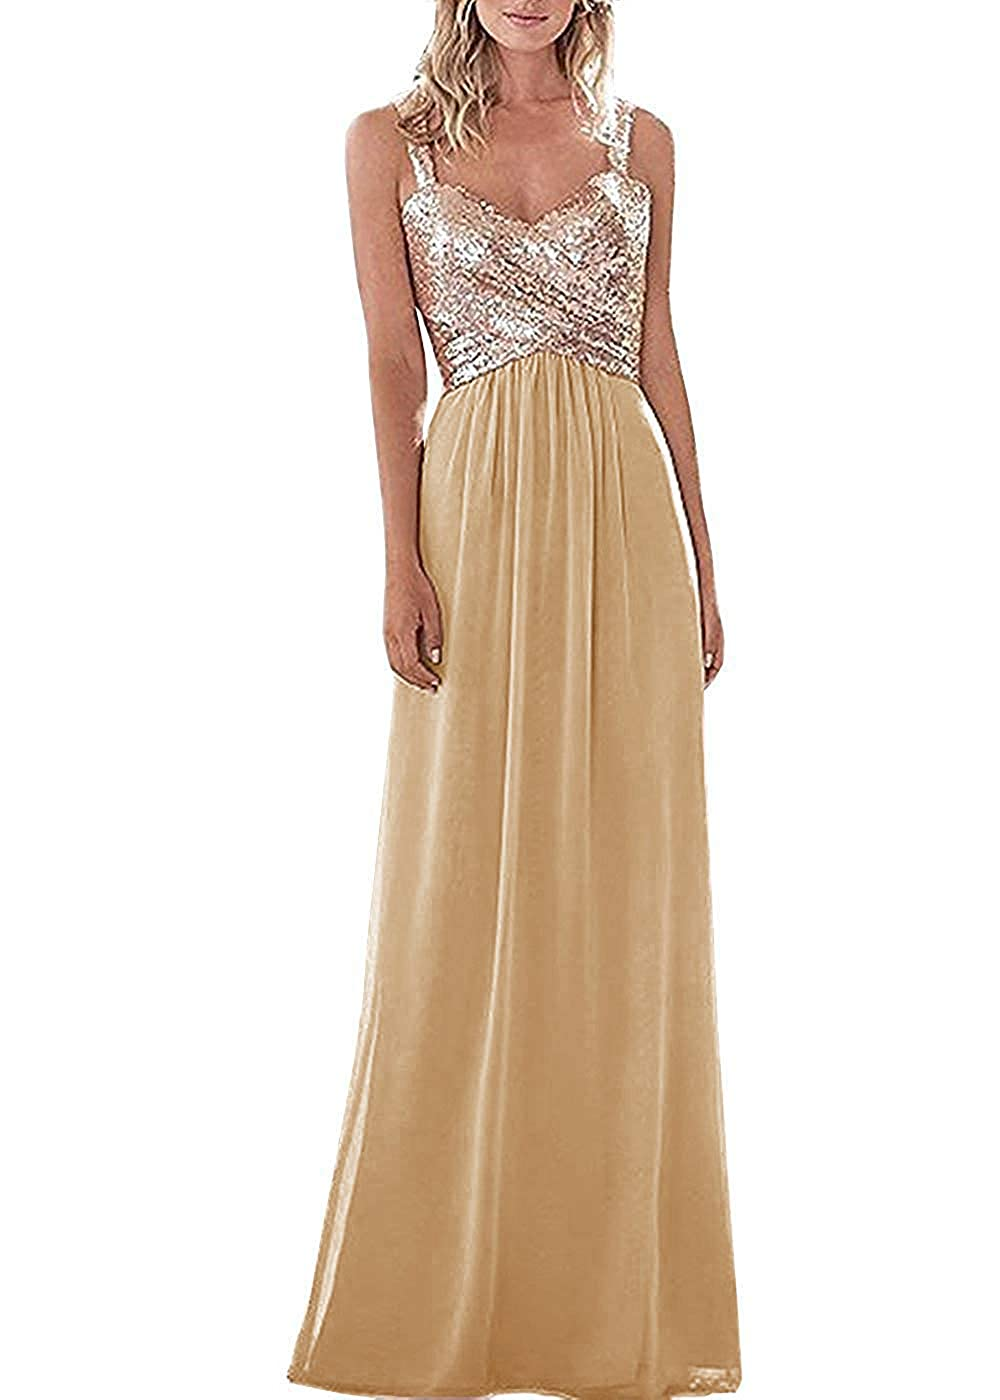 Champagne C LL Bridal Top Sequins pink gold Bridesmaid Dress Long Prom Party Dresses Evening